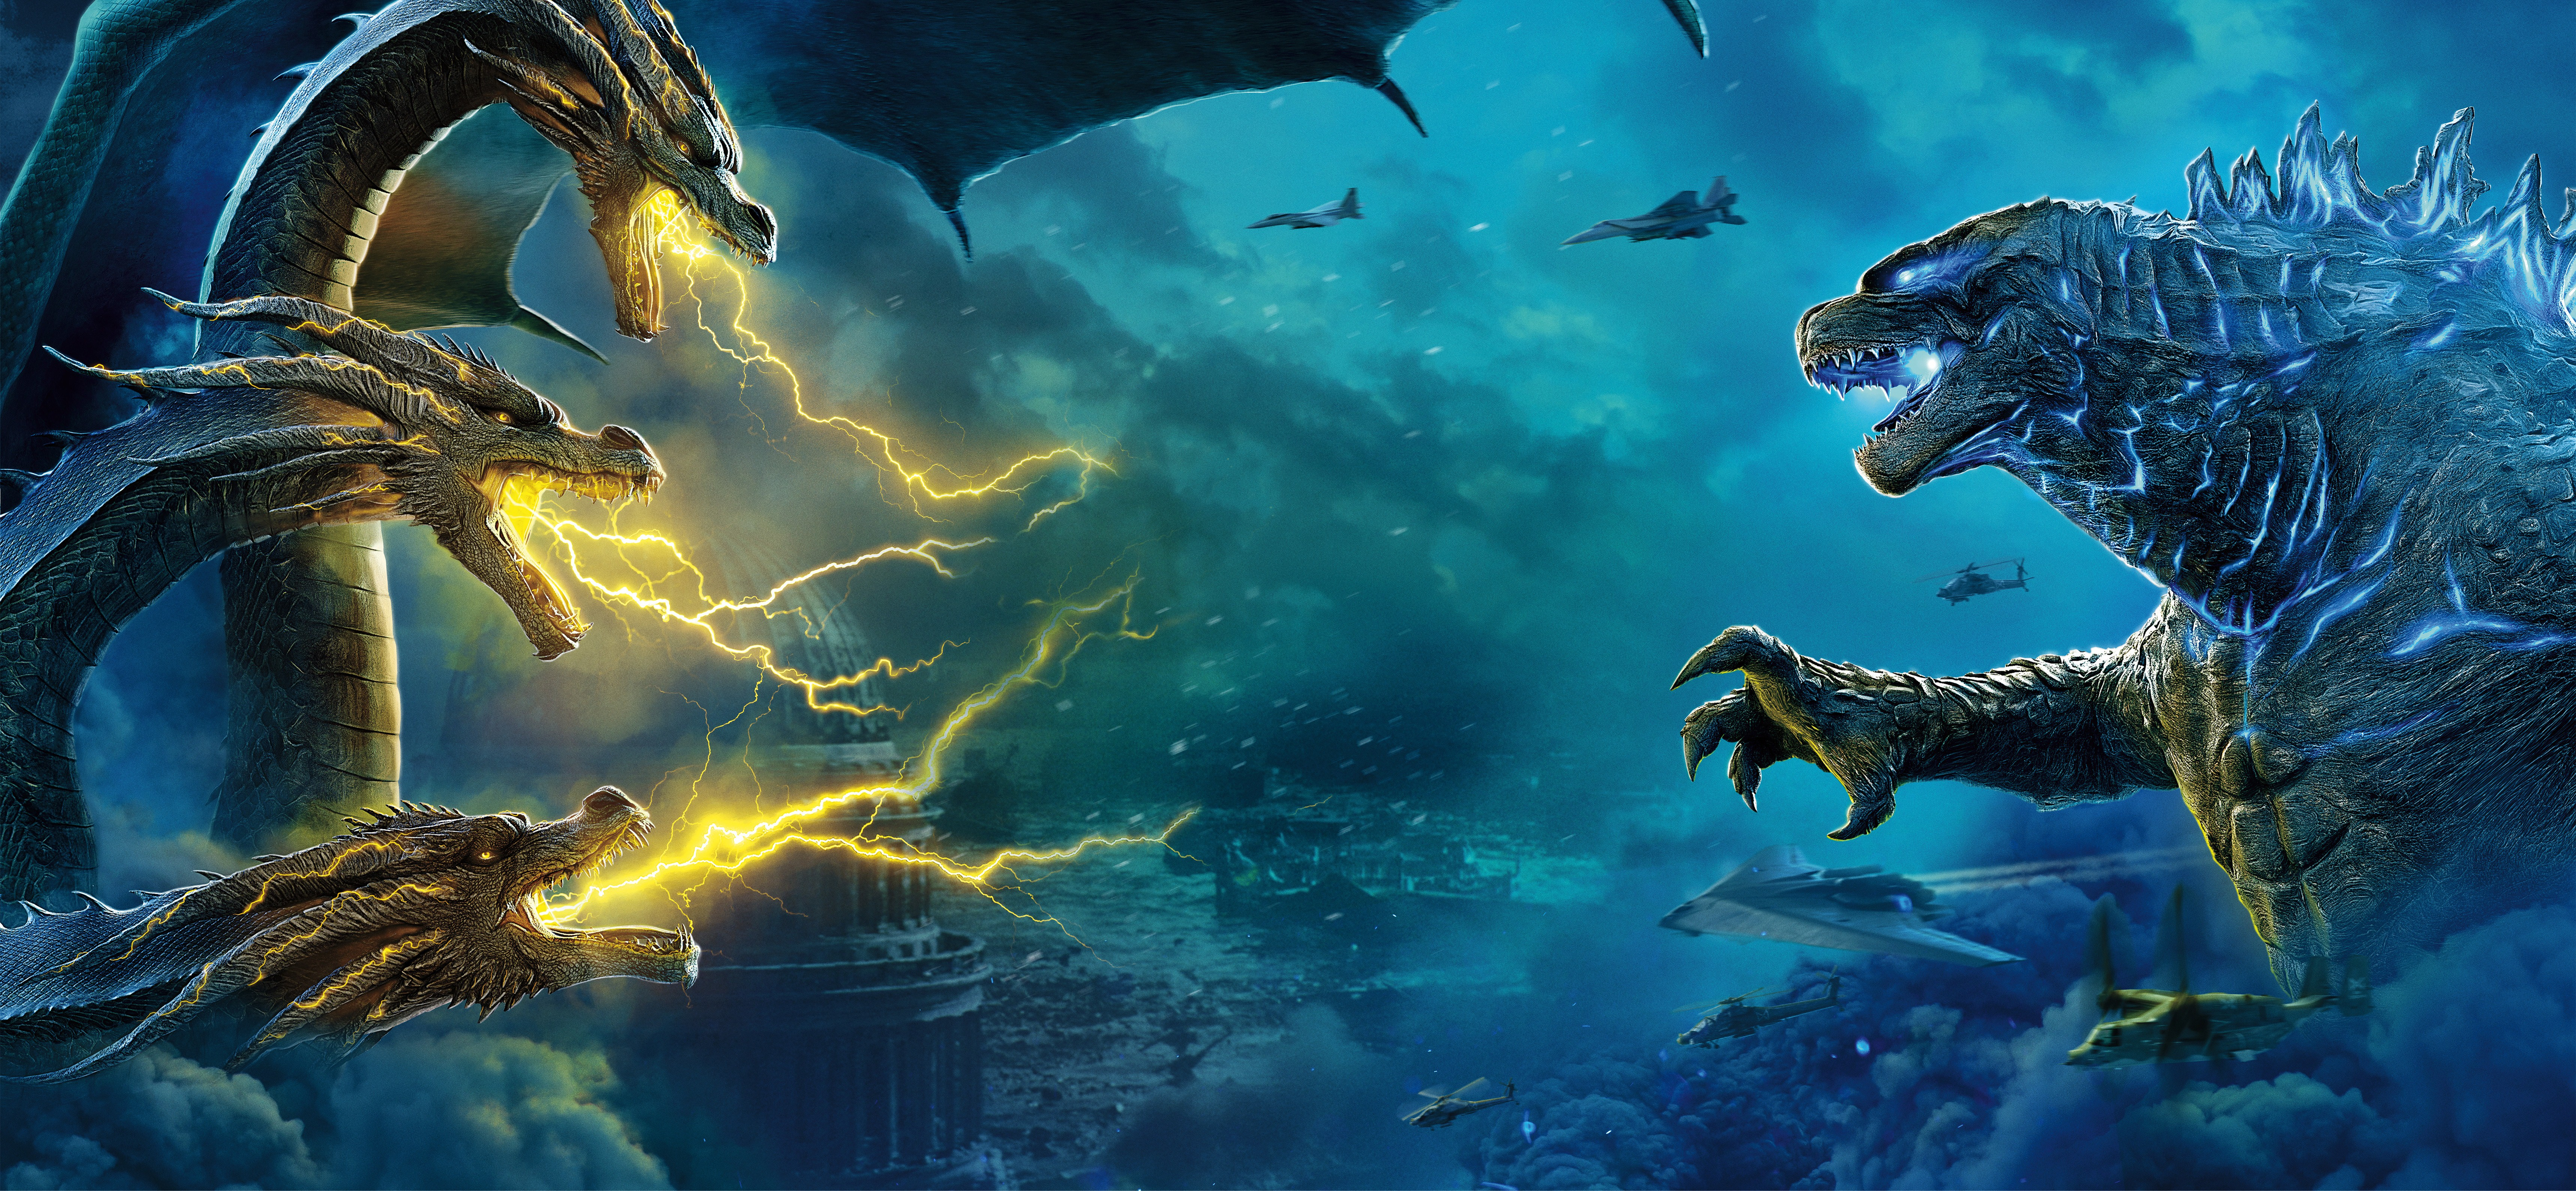 Godzilla King Of The Monsters Banner 2295999 Hd Wallpaper